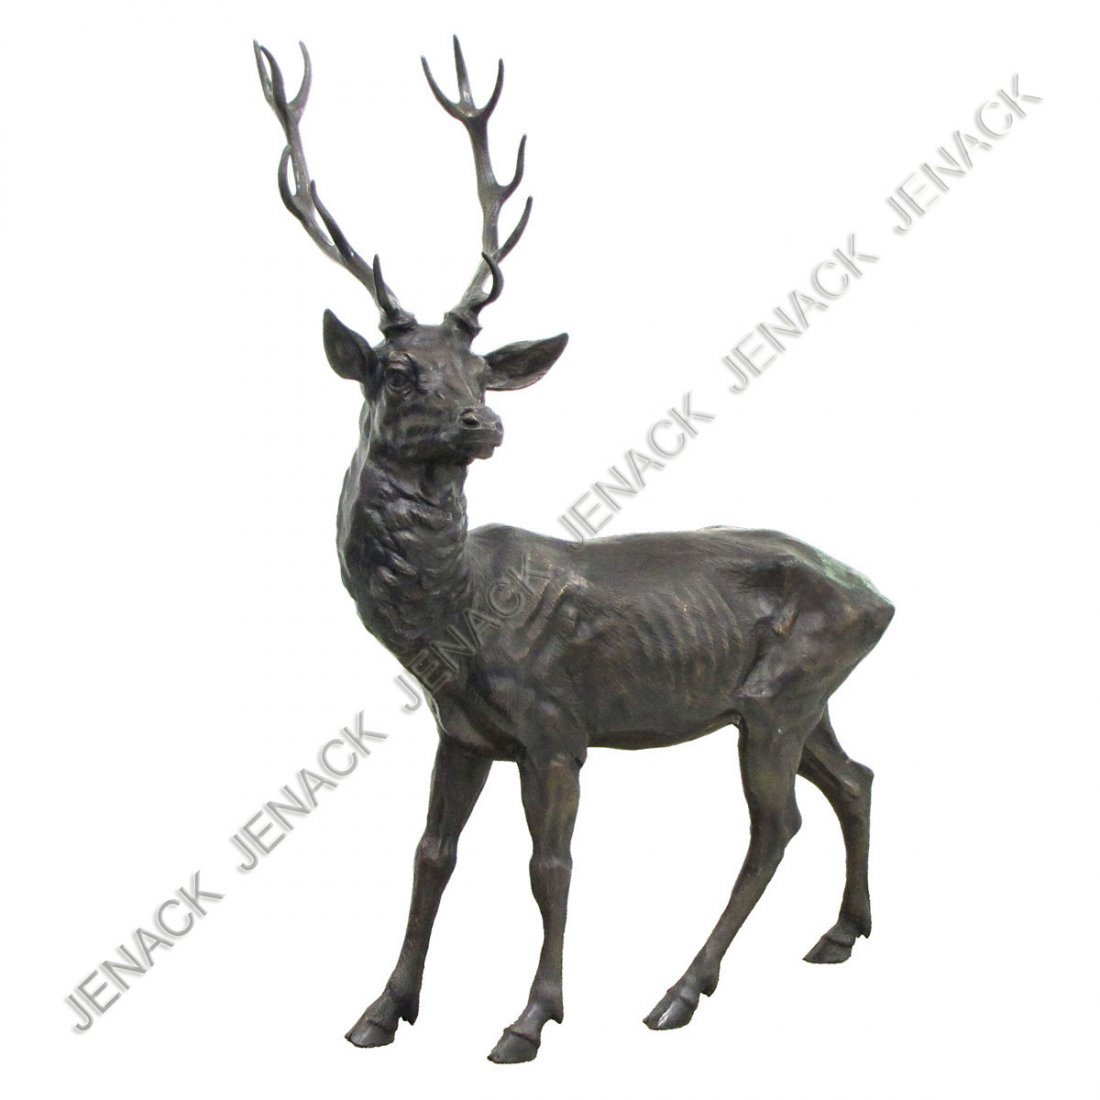 131: BRONZE FIGURE, RED STAG